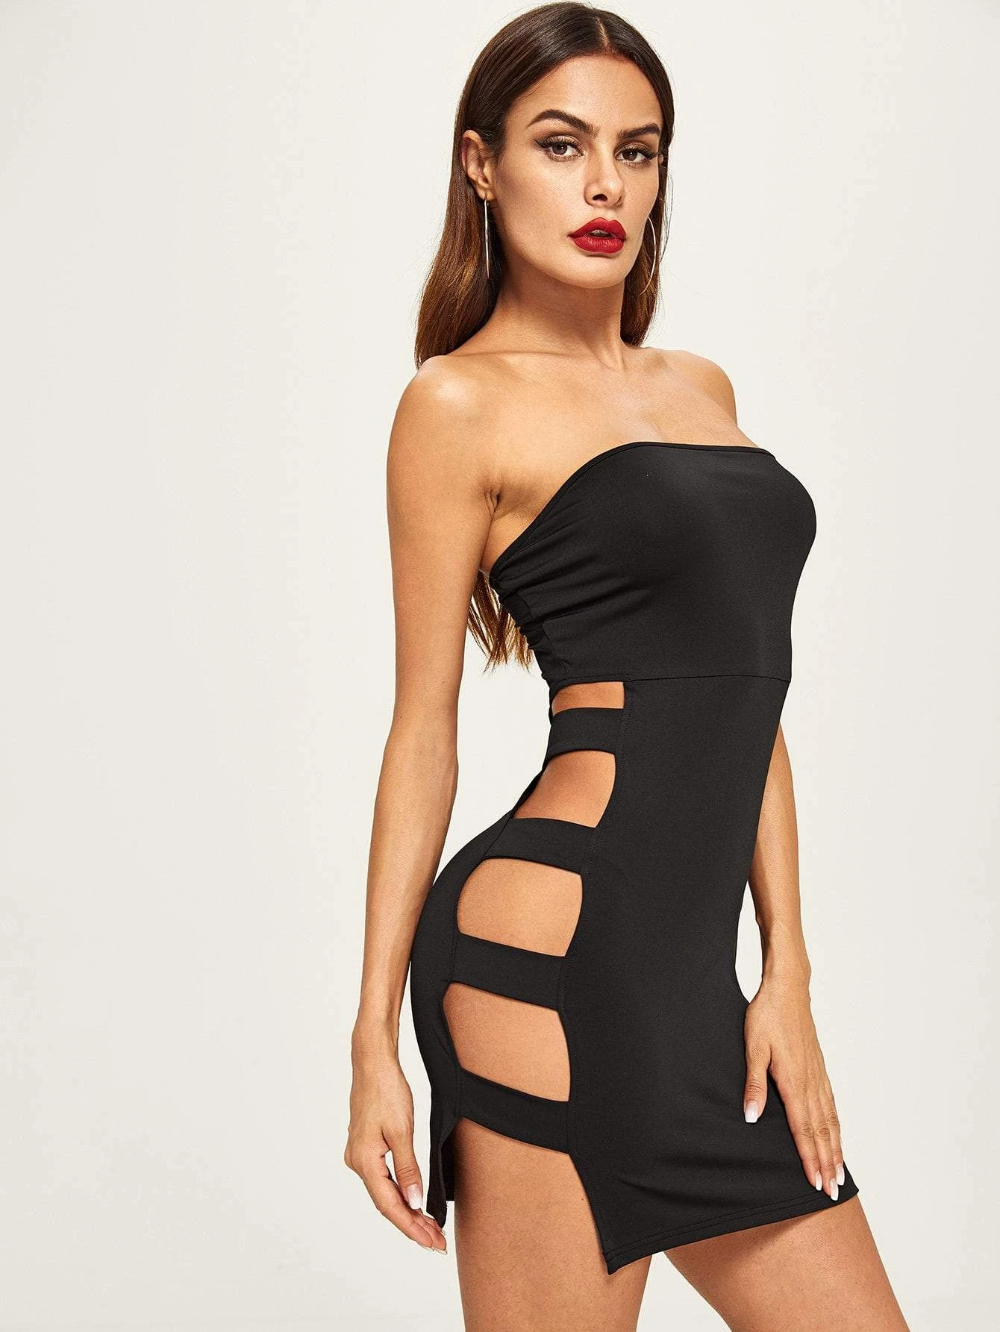 Party with Diamante Clubwear Black or Pink Summer Dress Cut Out Mini Tube